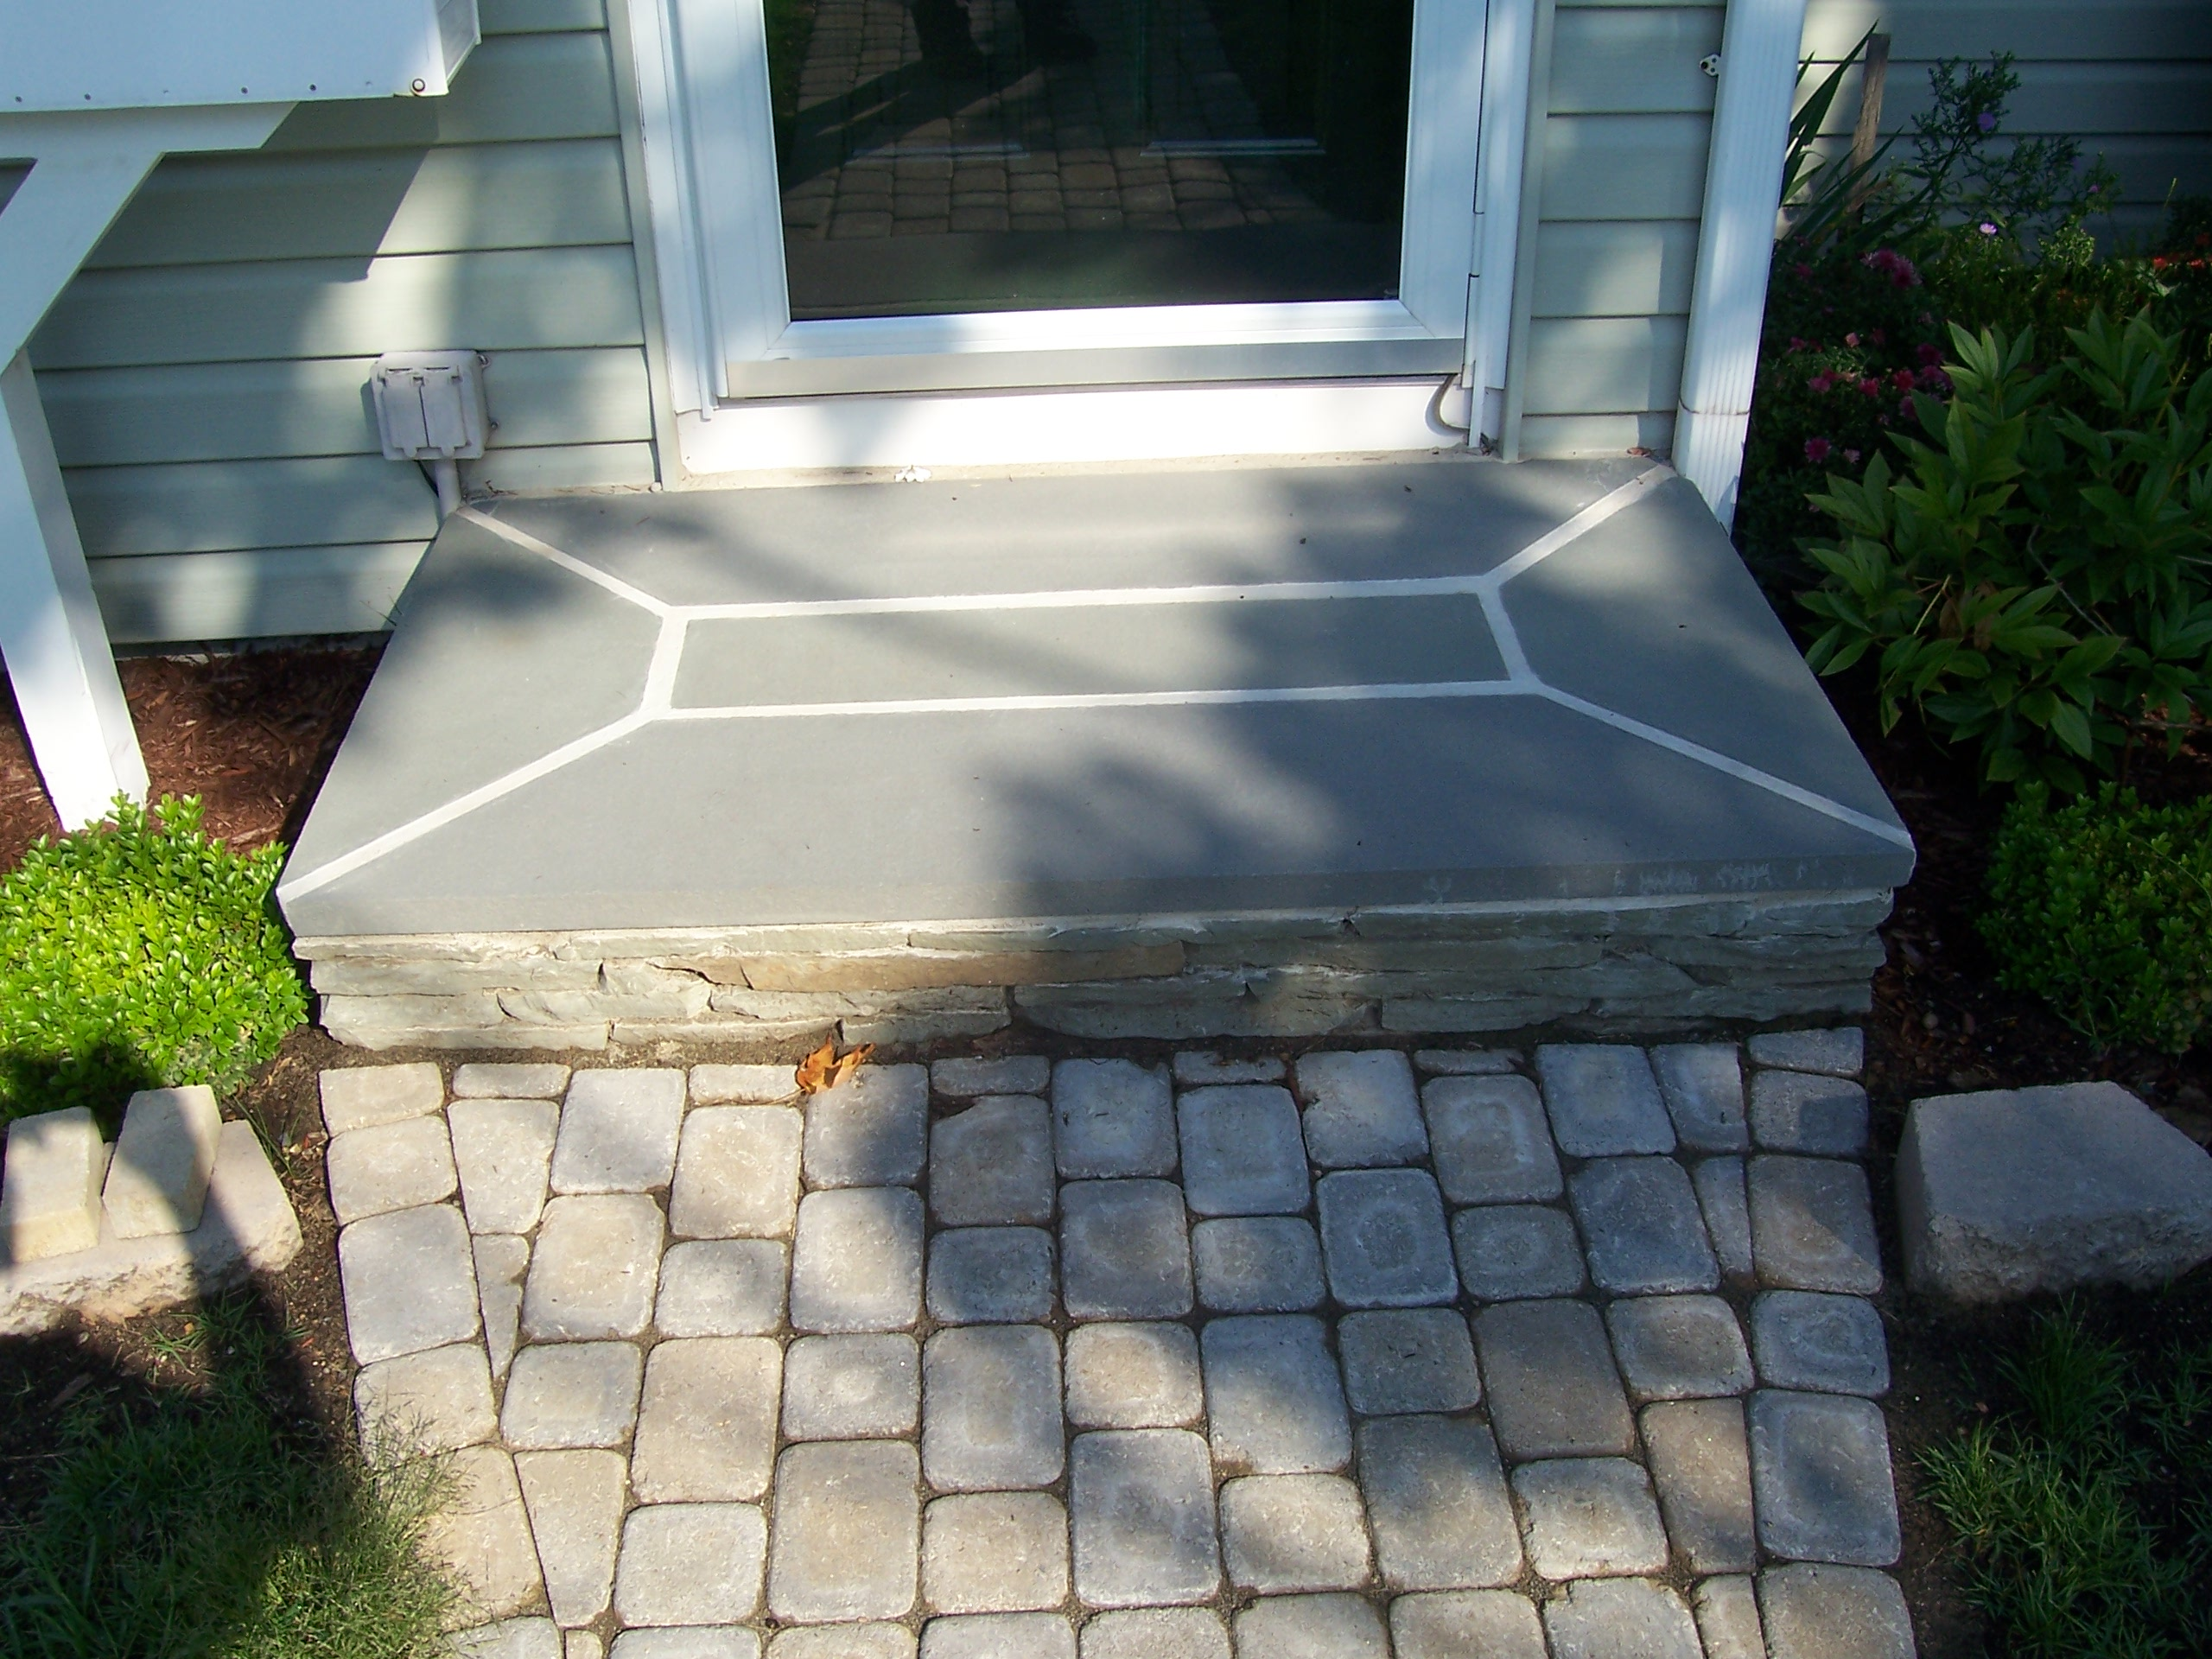 New walkway landing country landscaping llc for Removing concrete walkway